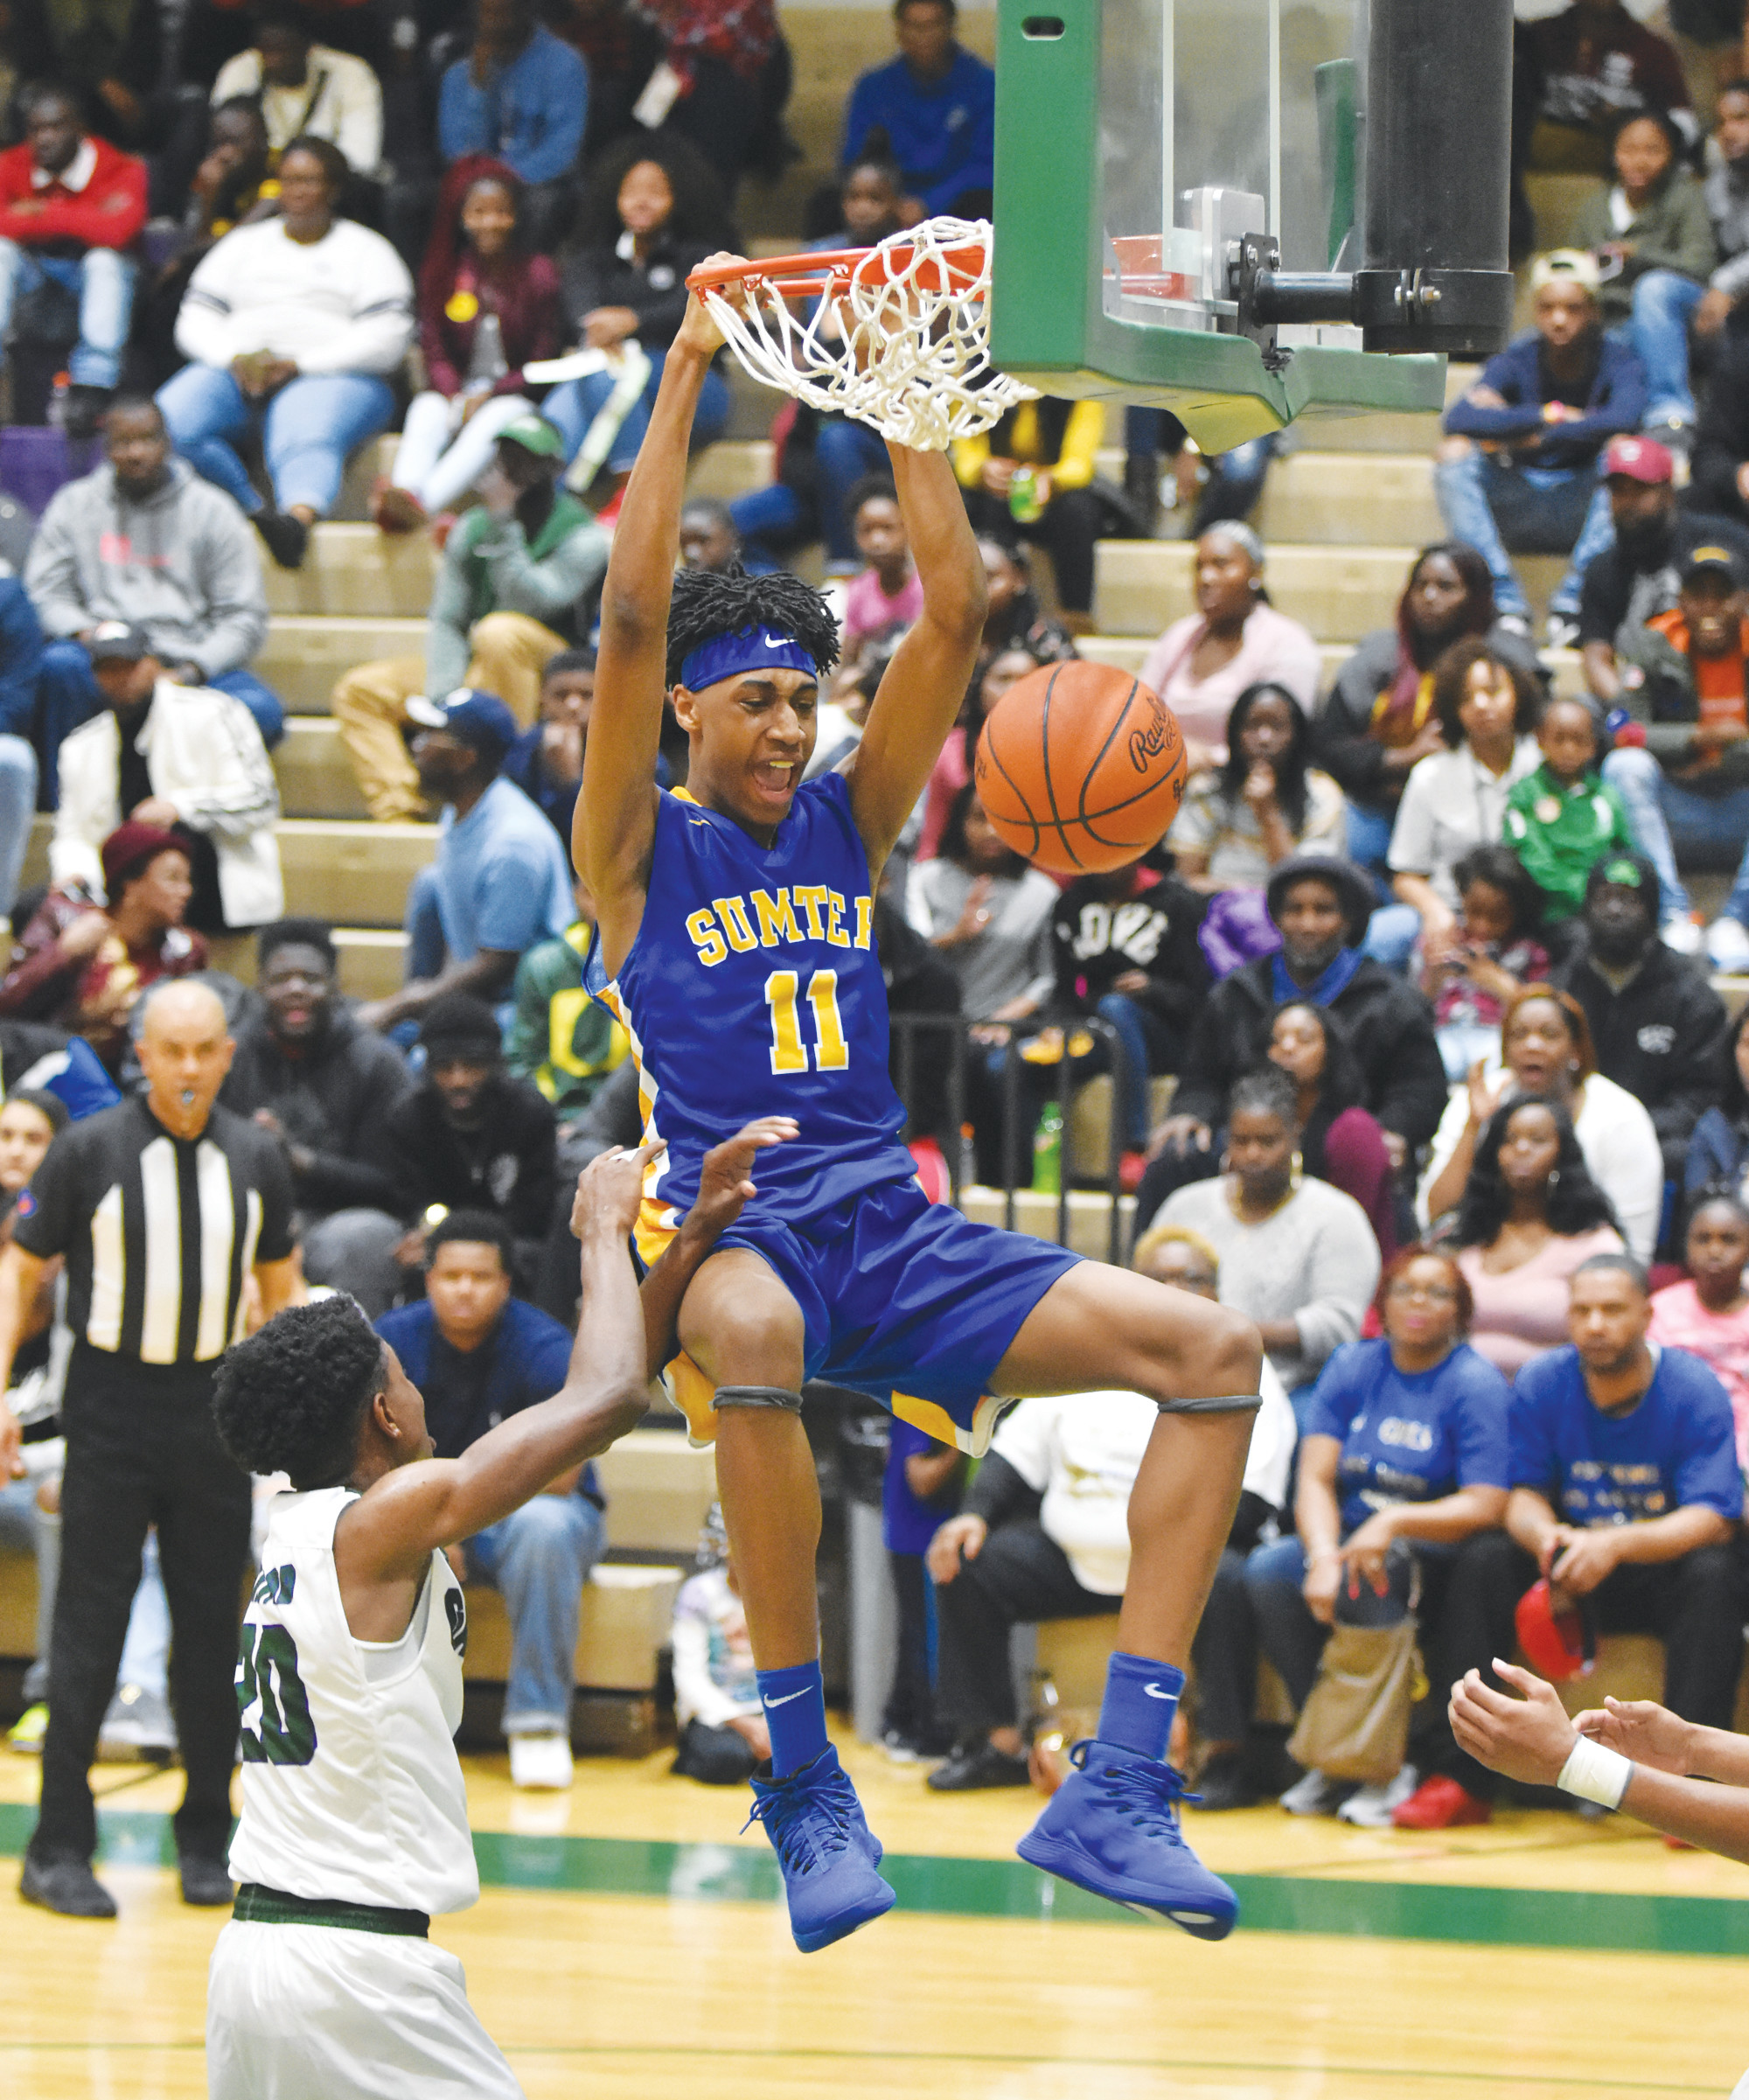 Sumter's Isaiah Moore (11) throws down a dunk for two of his game-leading 18 points in the Gamecocks' 70-37 victory over Lakewood on Friday at The Swamp.